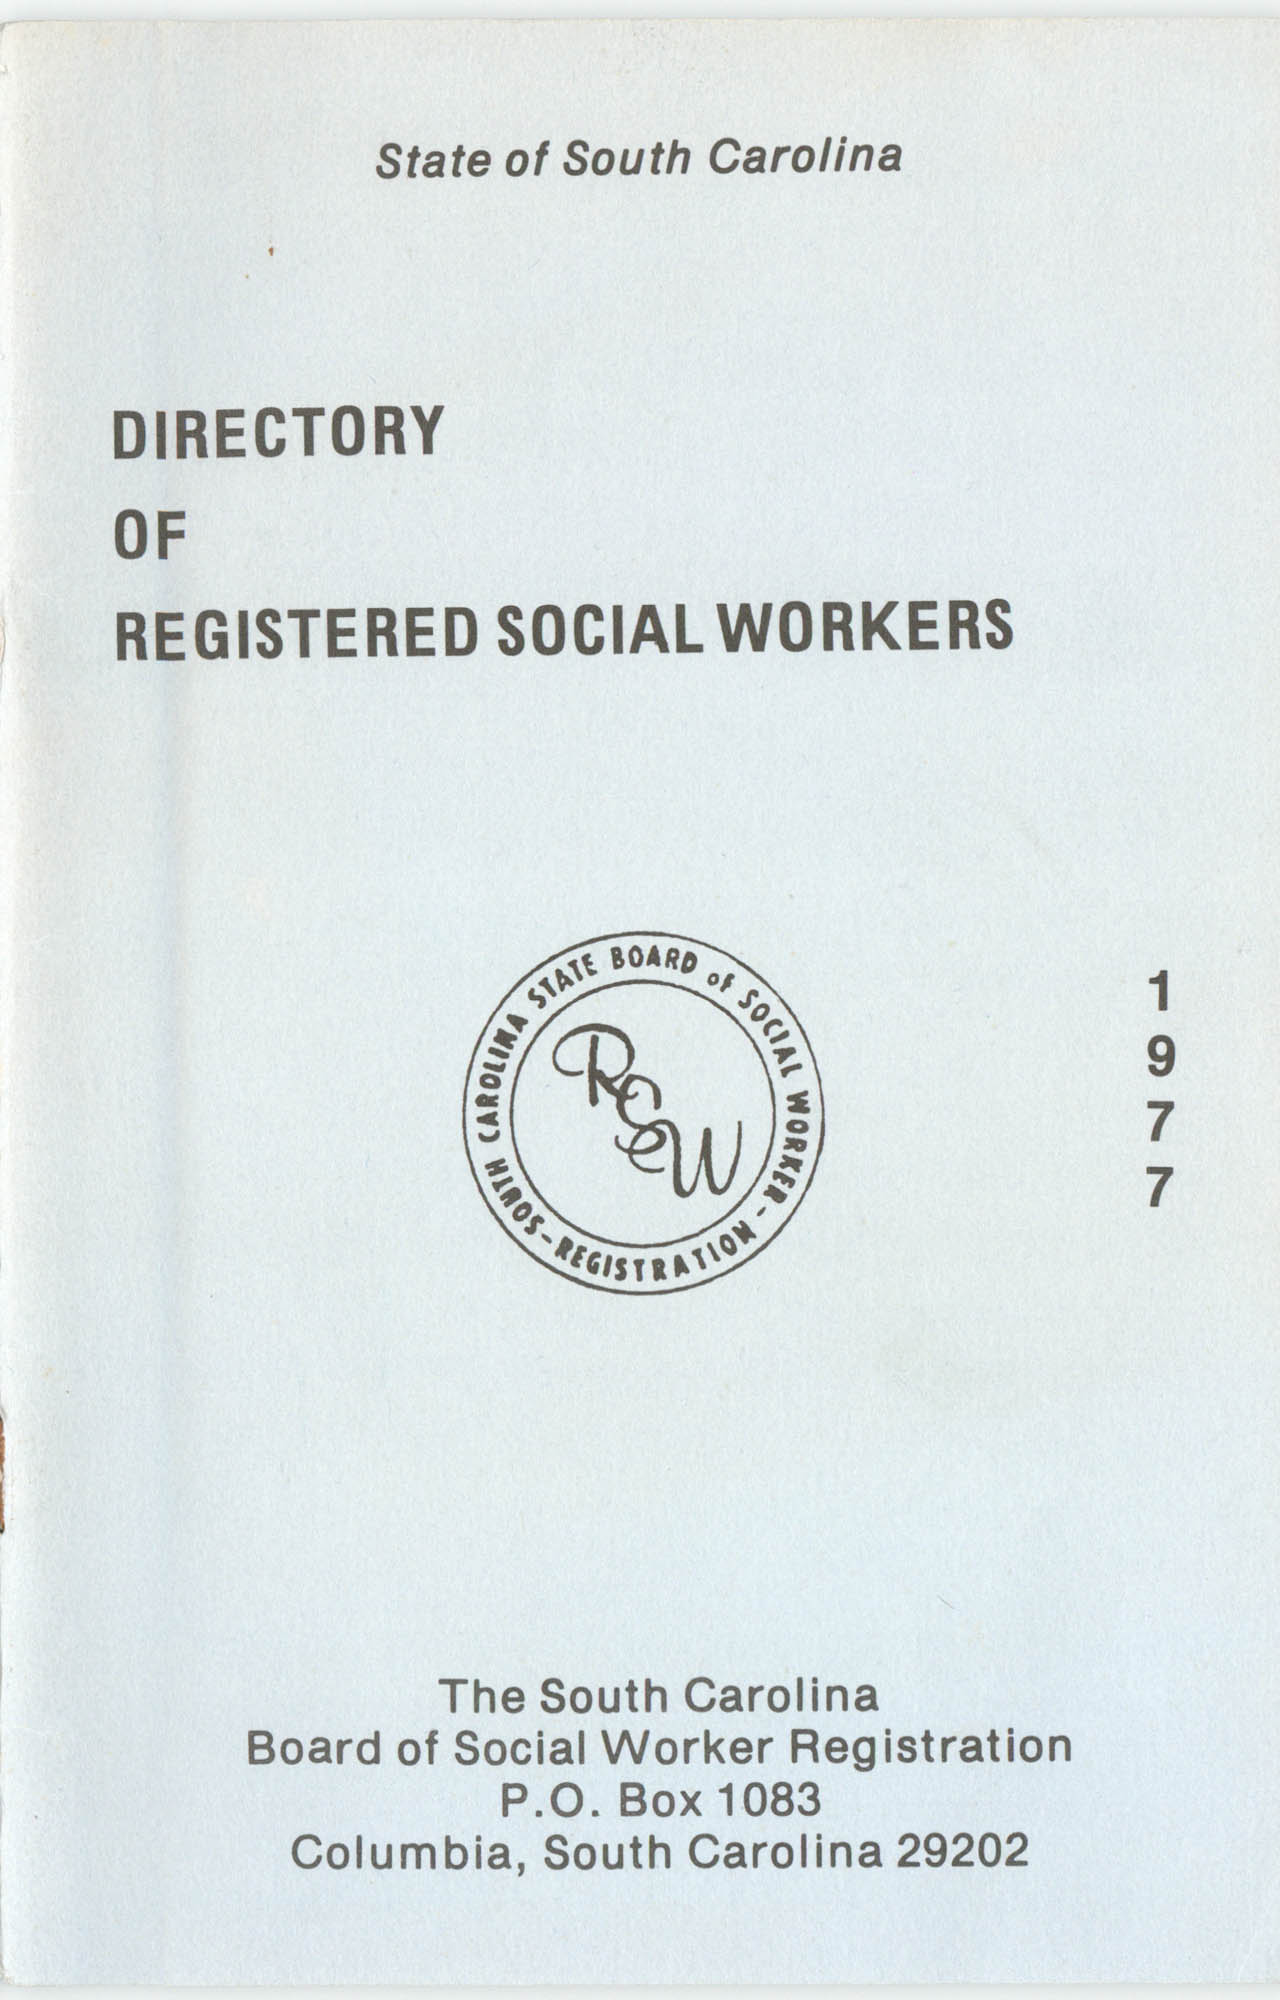 State of South Carolina Directory of Registered Social Workers, 1977